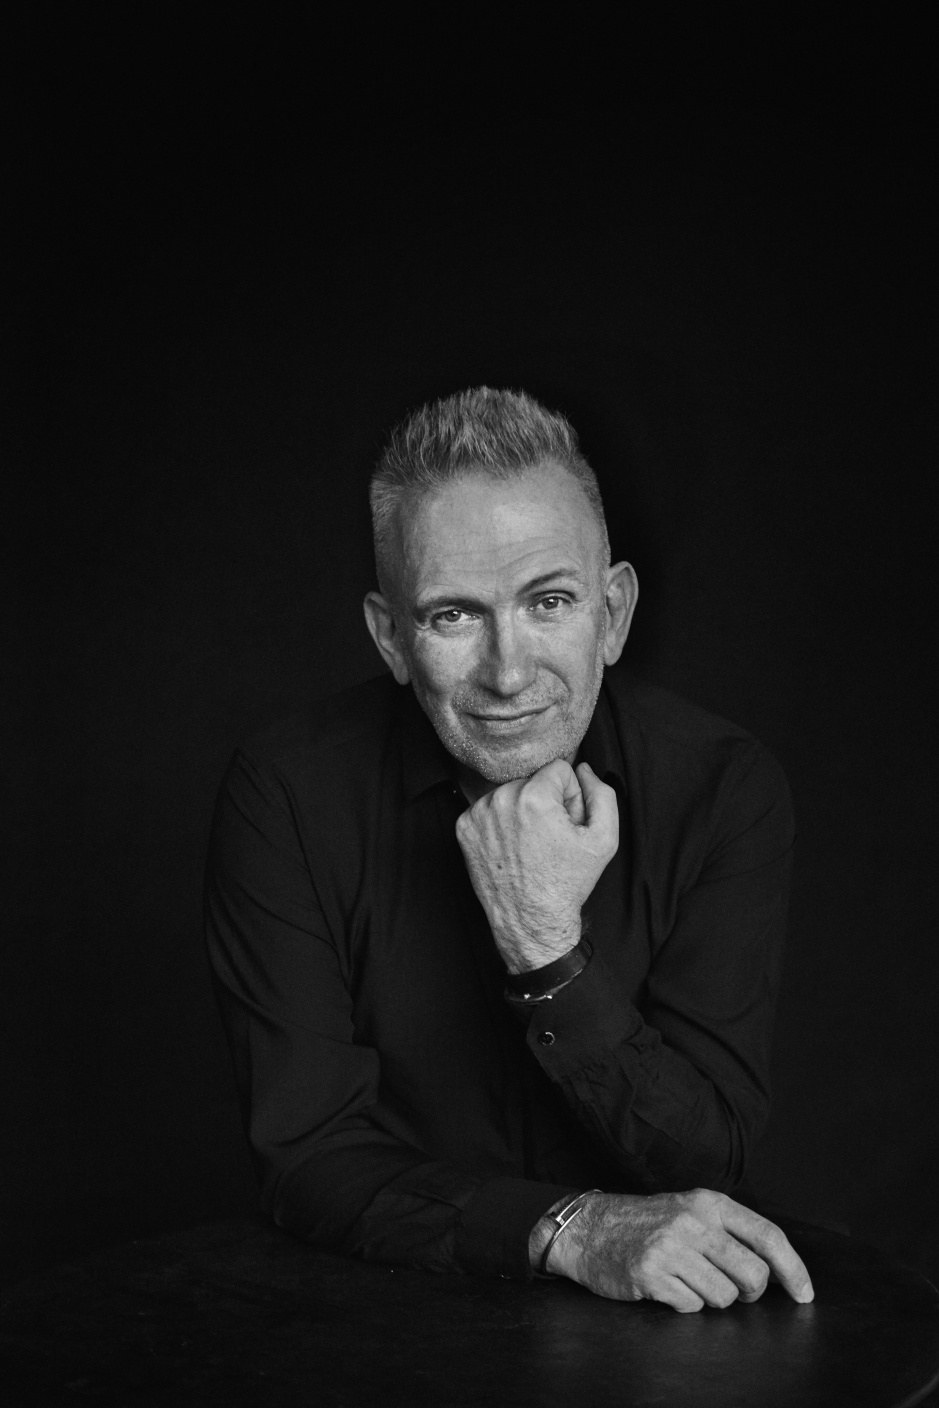 FIG_01 Jean Paul Gaultier par Peter Lindbergh, Paris, 2016